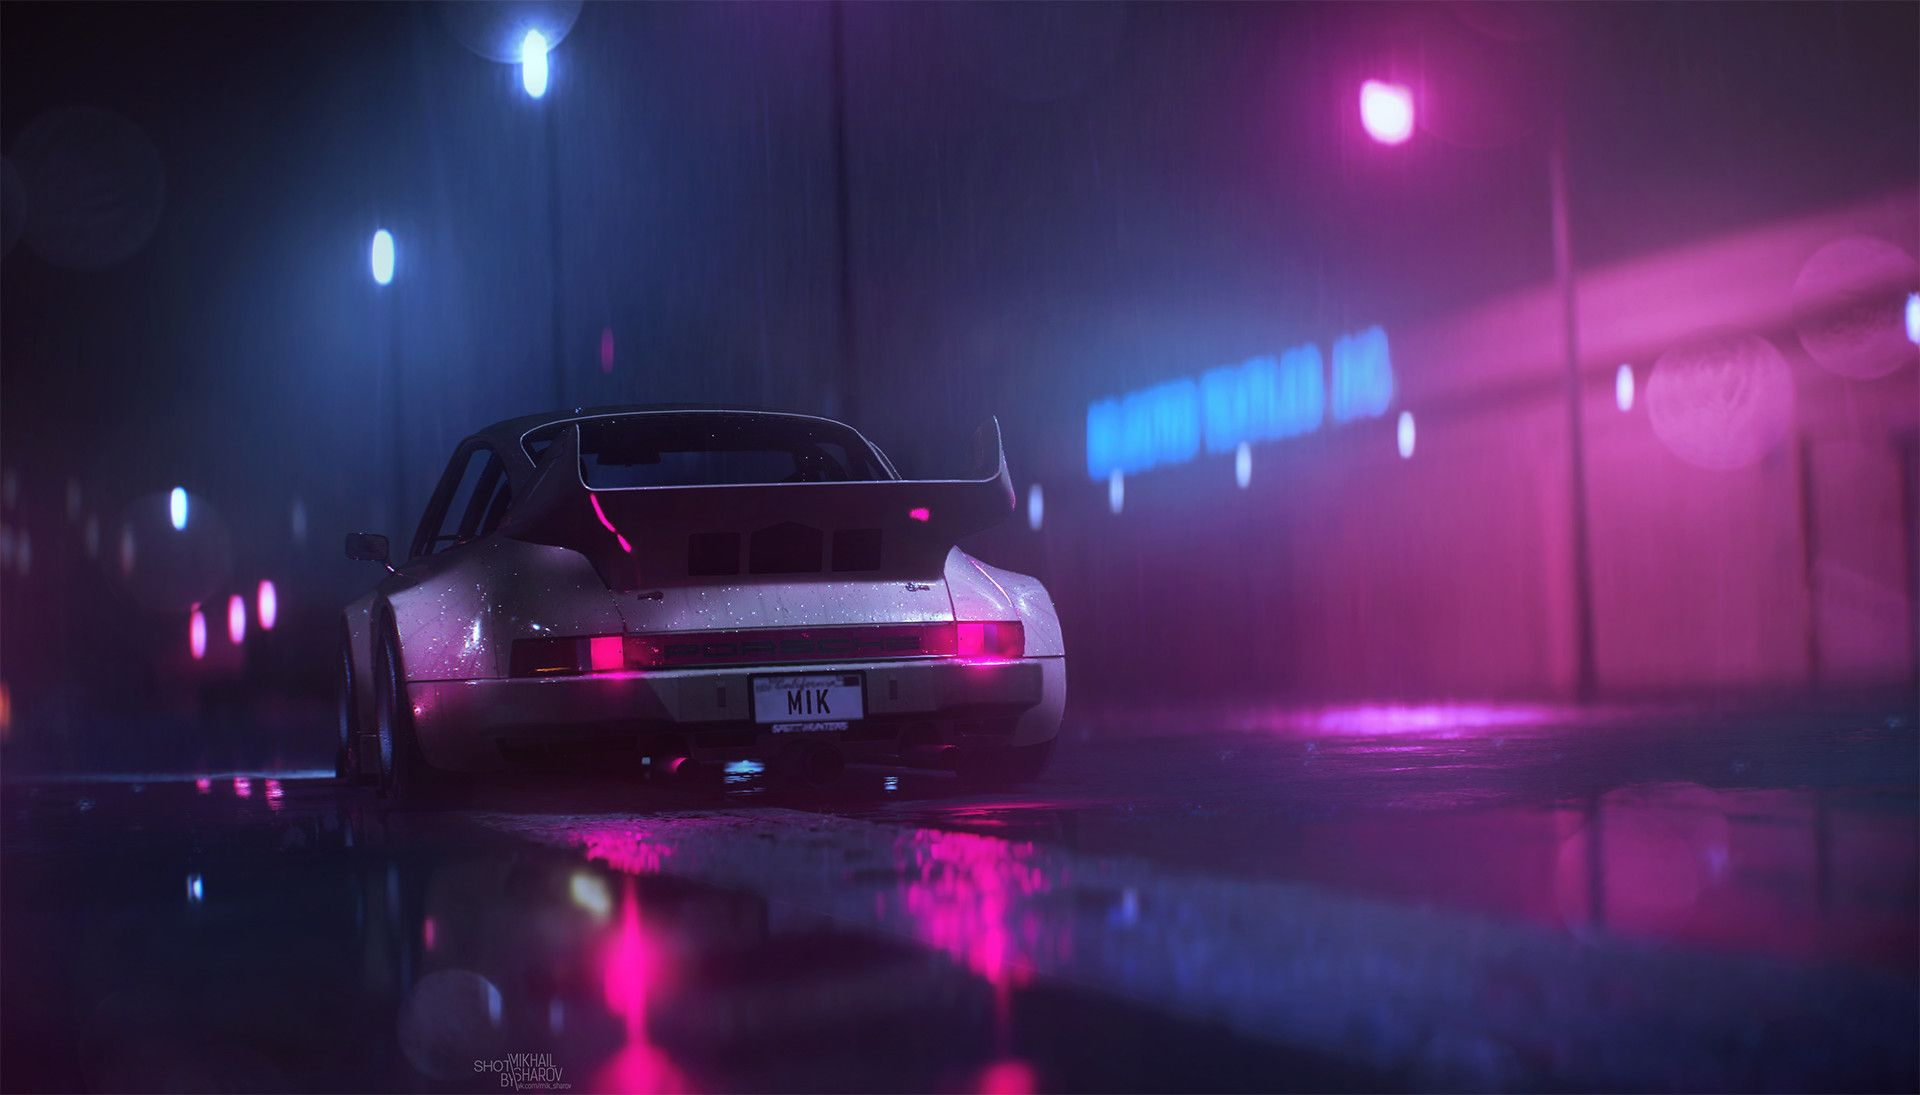 Neon Nights Mikhail Sharov Vaporwave Wallpaper Background Images Wallpapers Neon Wallpaper